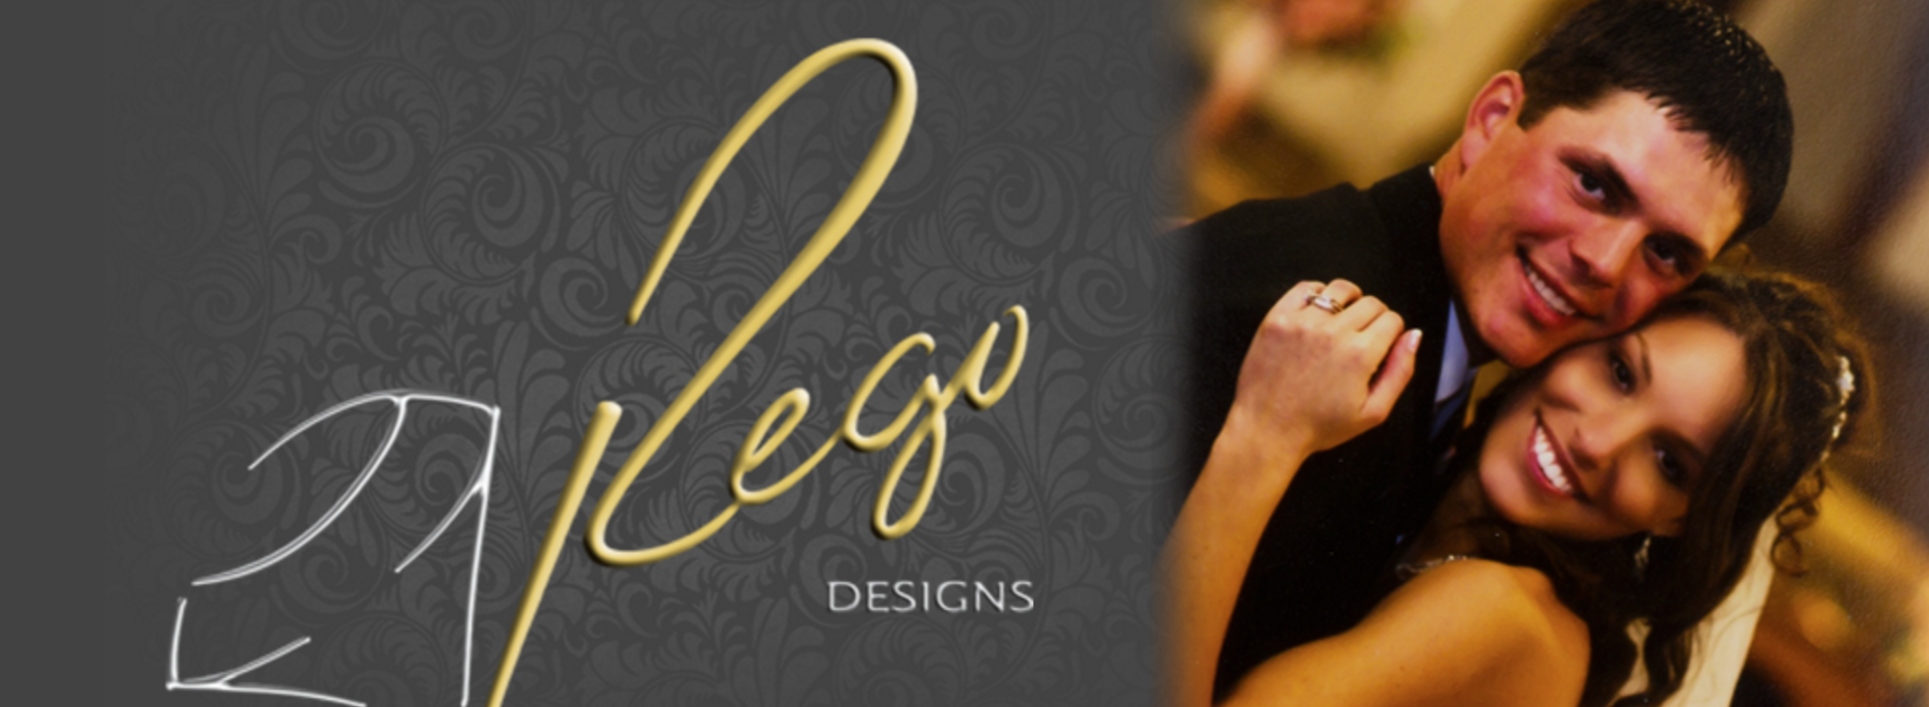 Nelson's Jewelry Rego Designs